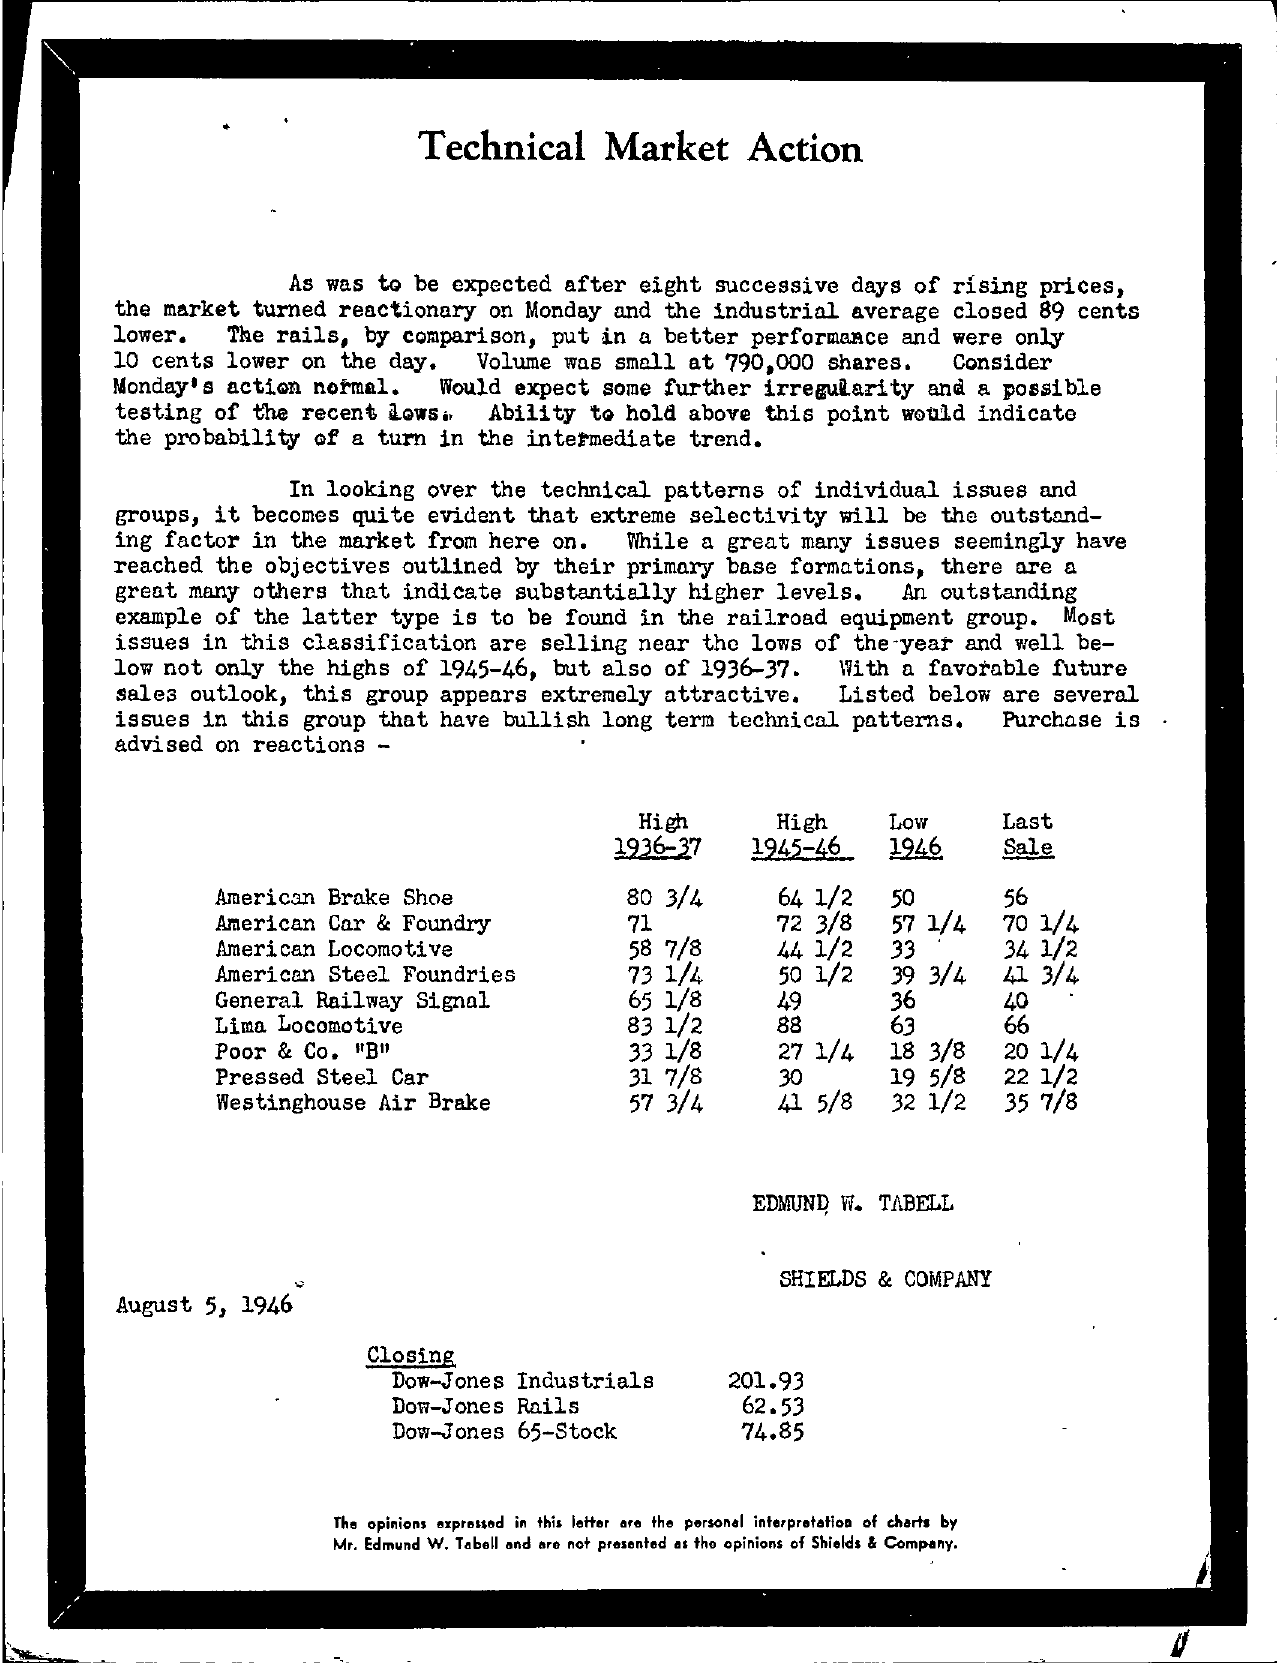 Tabell's Market Letter - August 05, 1946